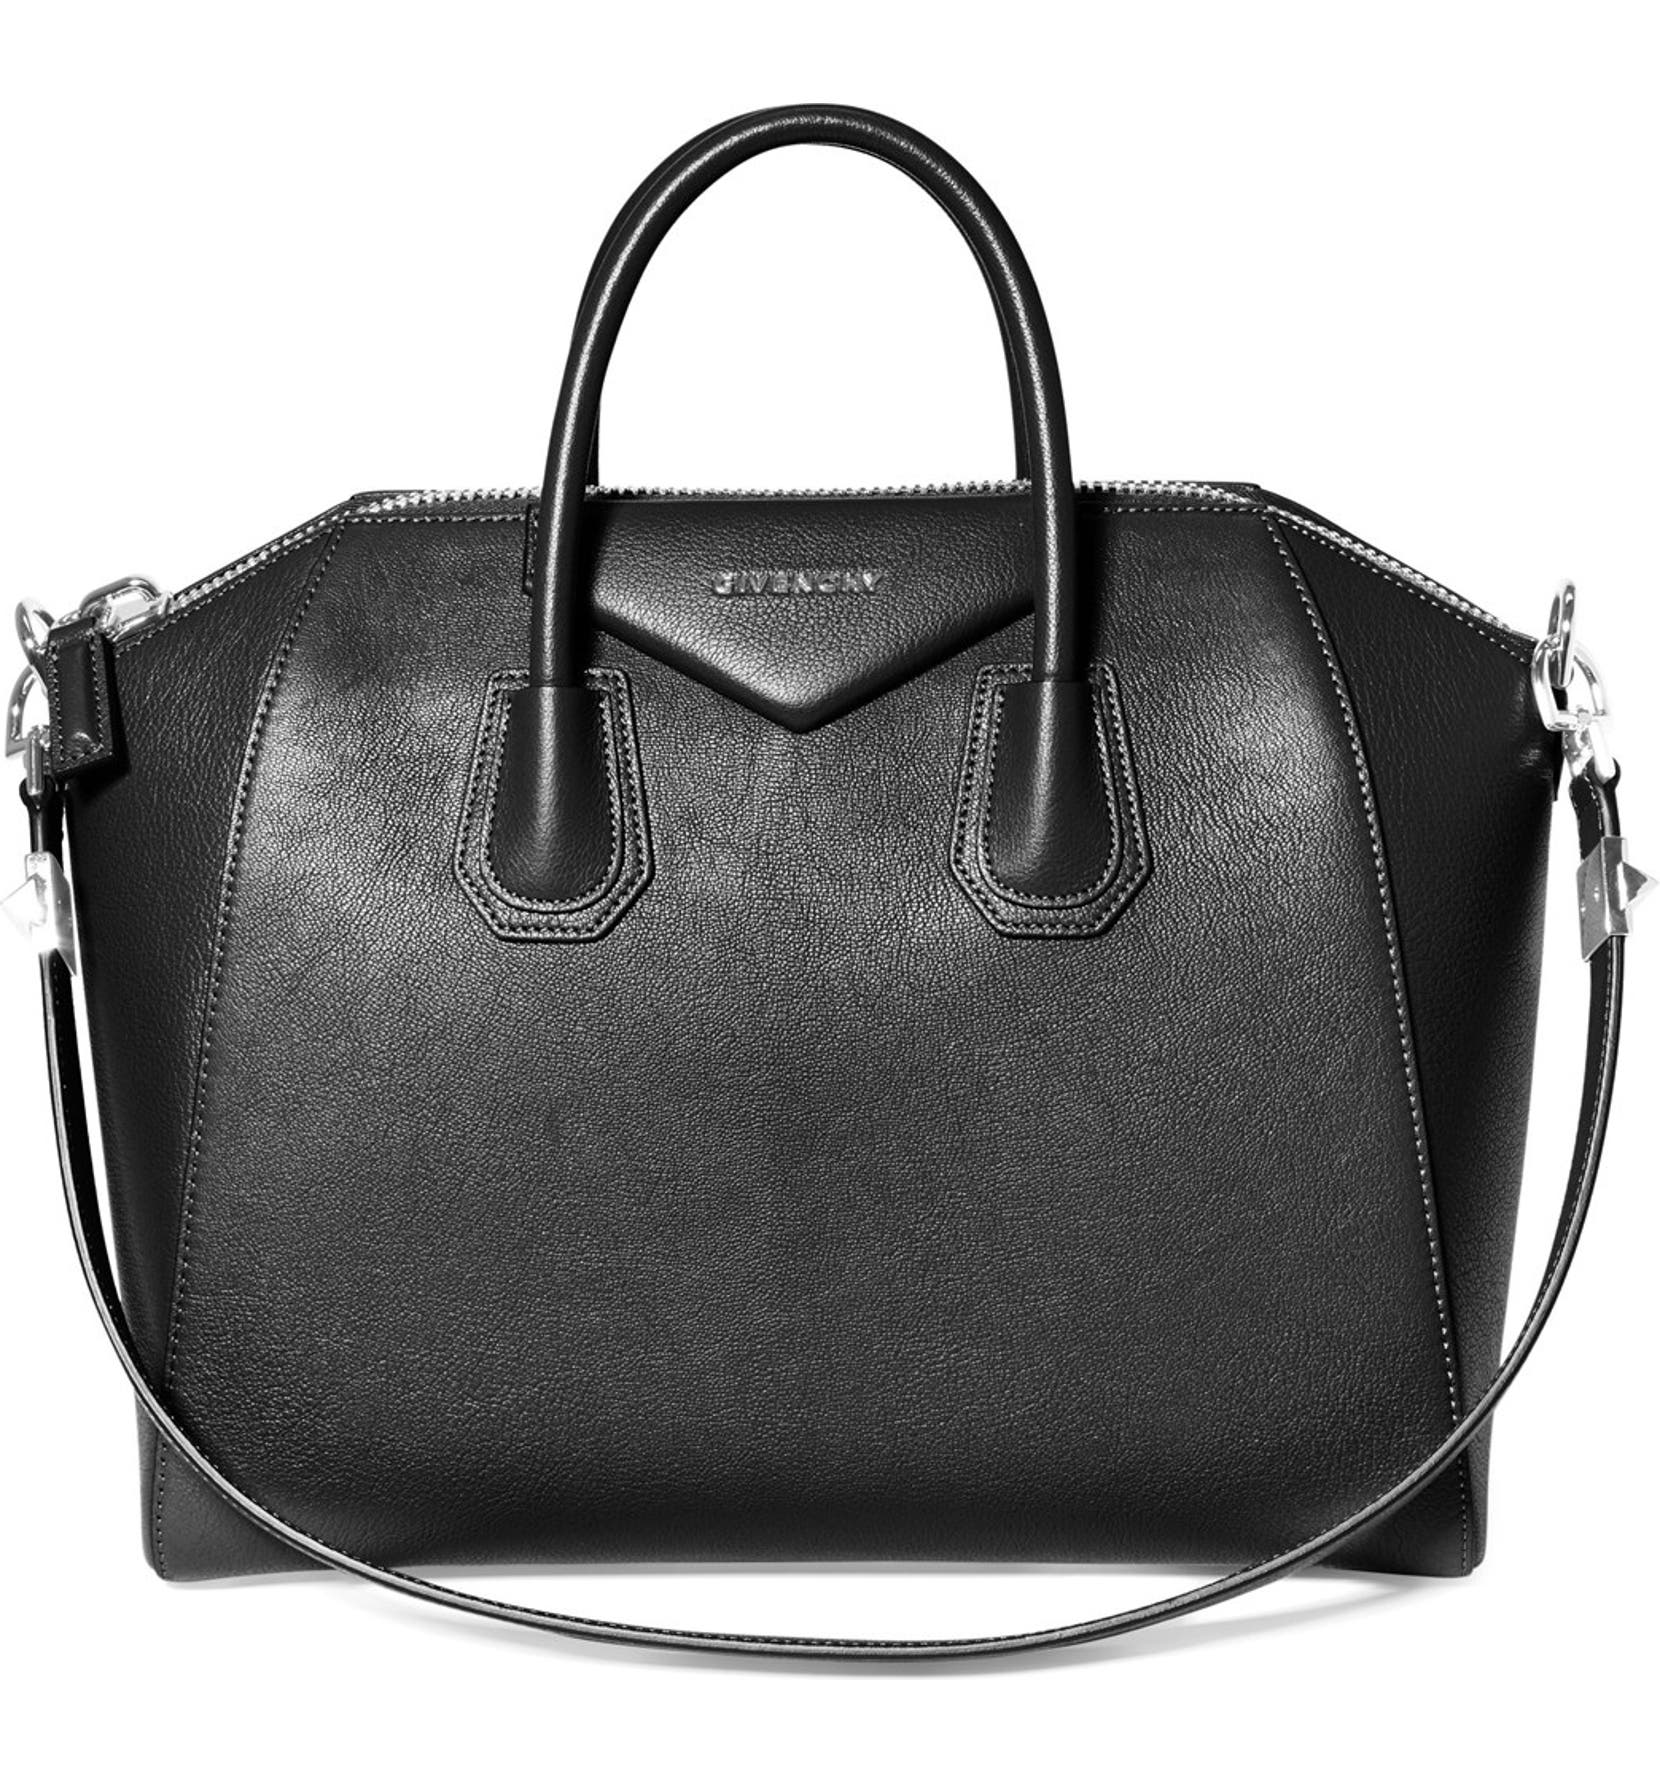 b9f2e7bf27a3 Givenchy  Medium Antigona  Sugar Leather Satchel